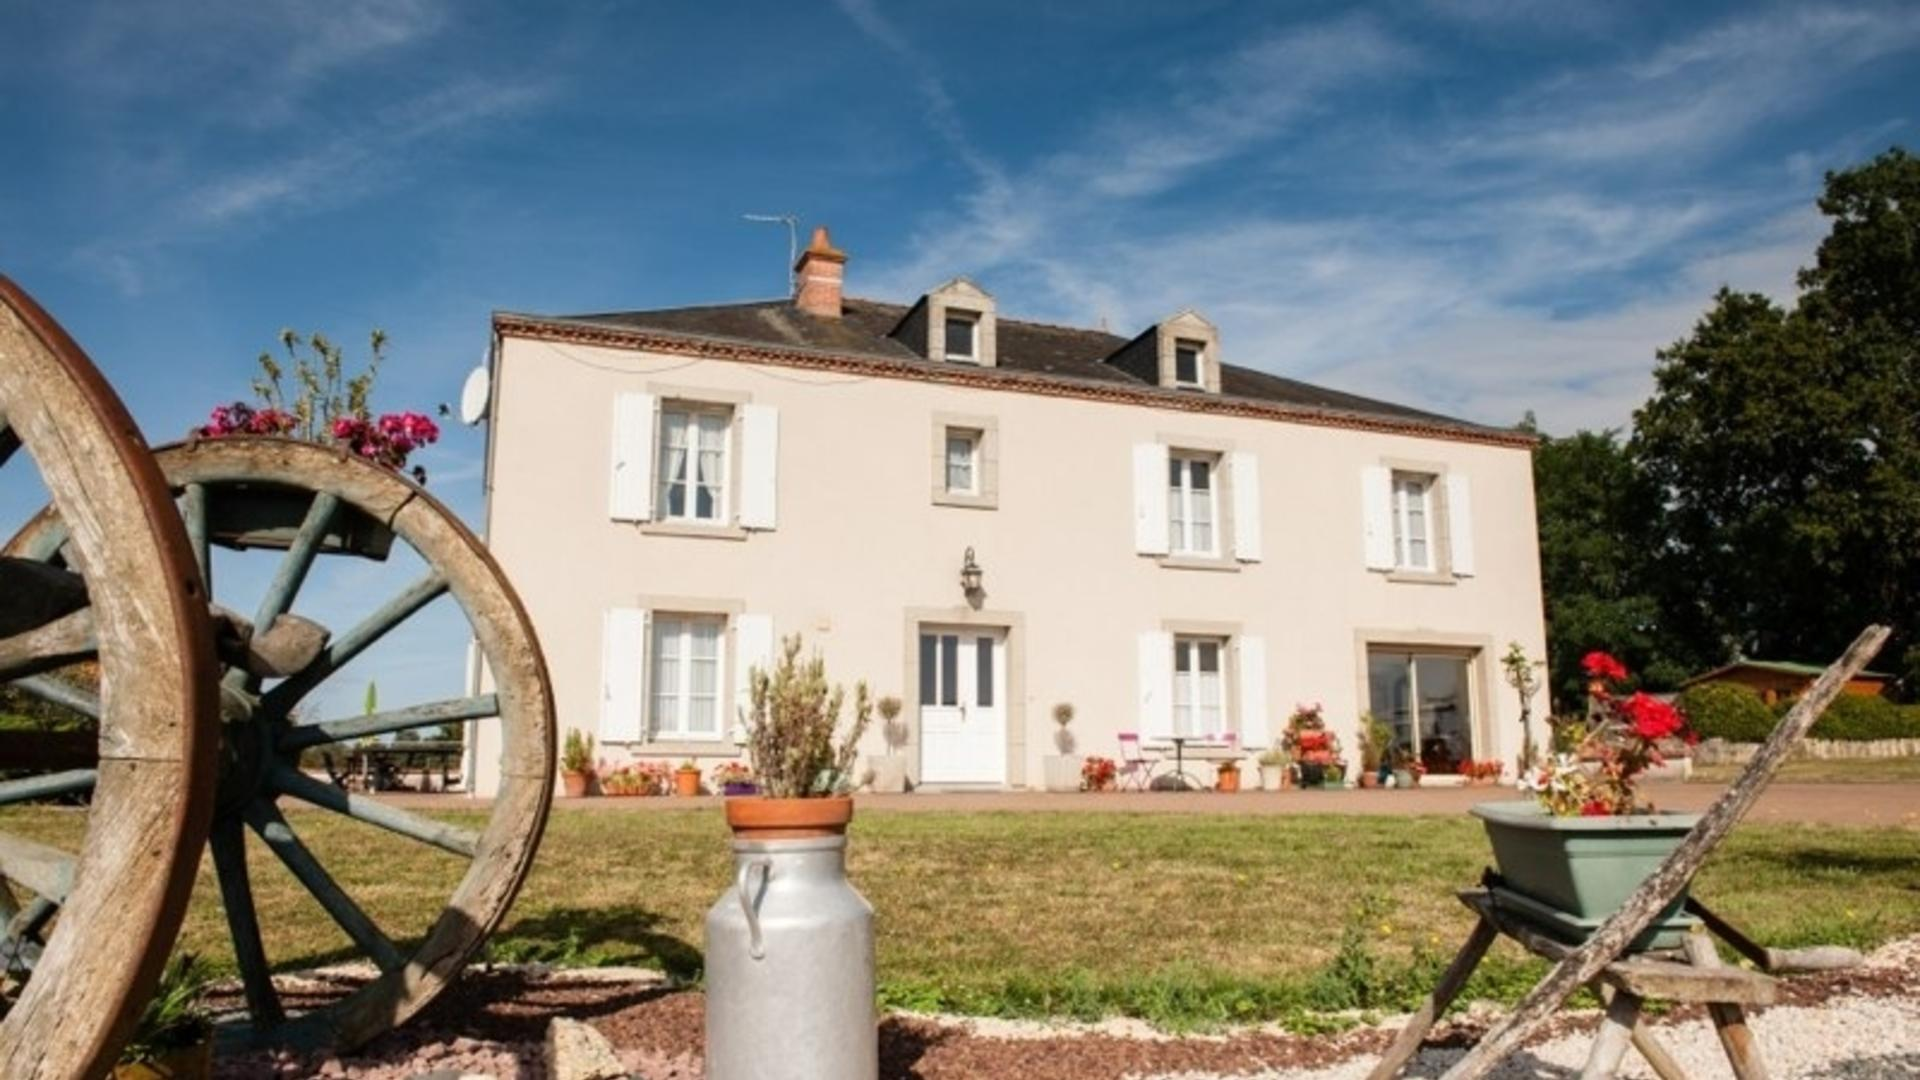 5 Bedroom Private house in Poitou-Charentes, France